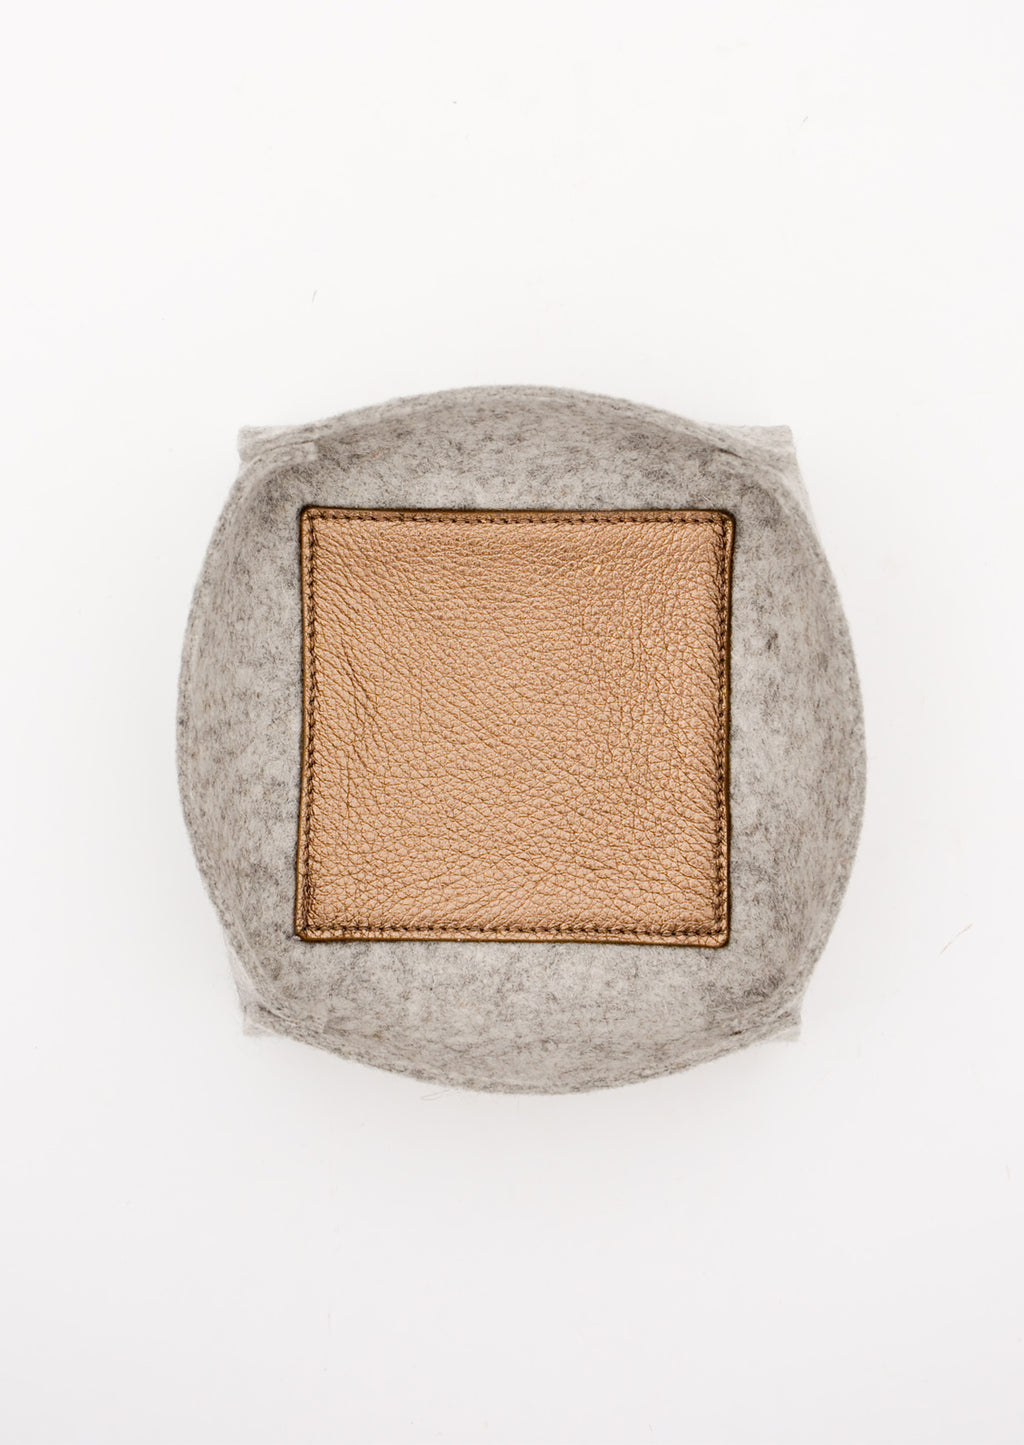 Large / Heather Grey: Felt & Leather Catchall Tray in Large / Heather Grey - LEIF